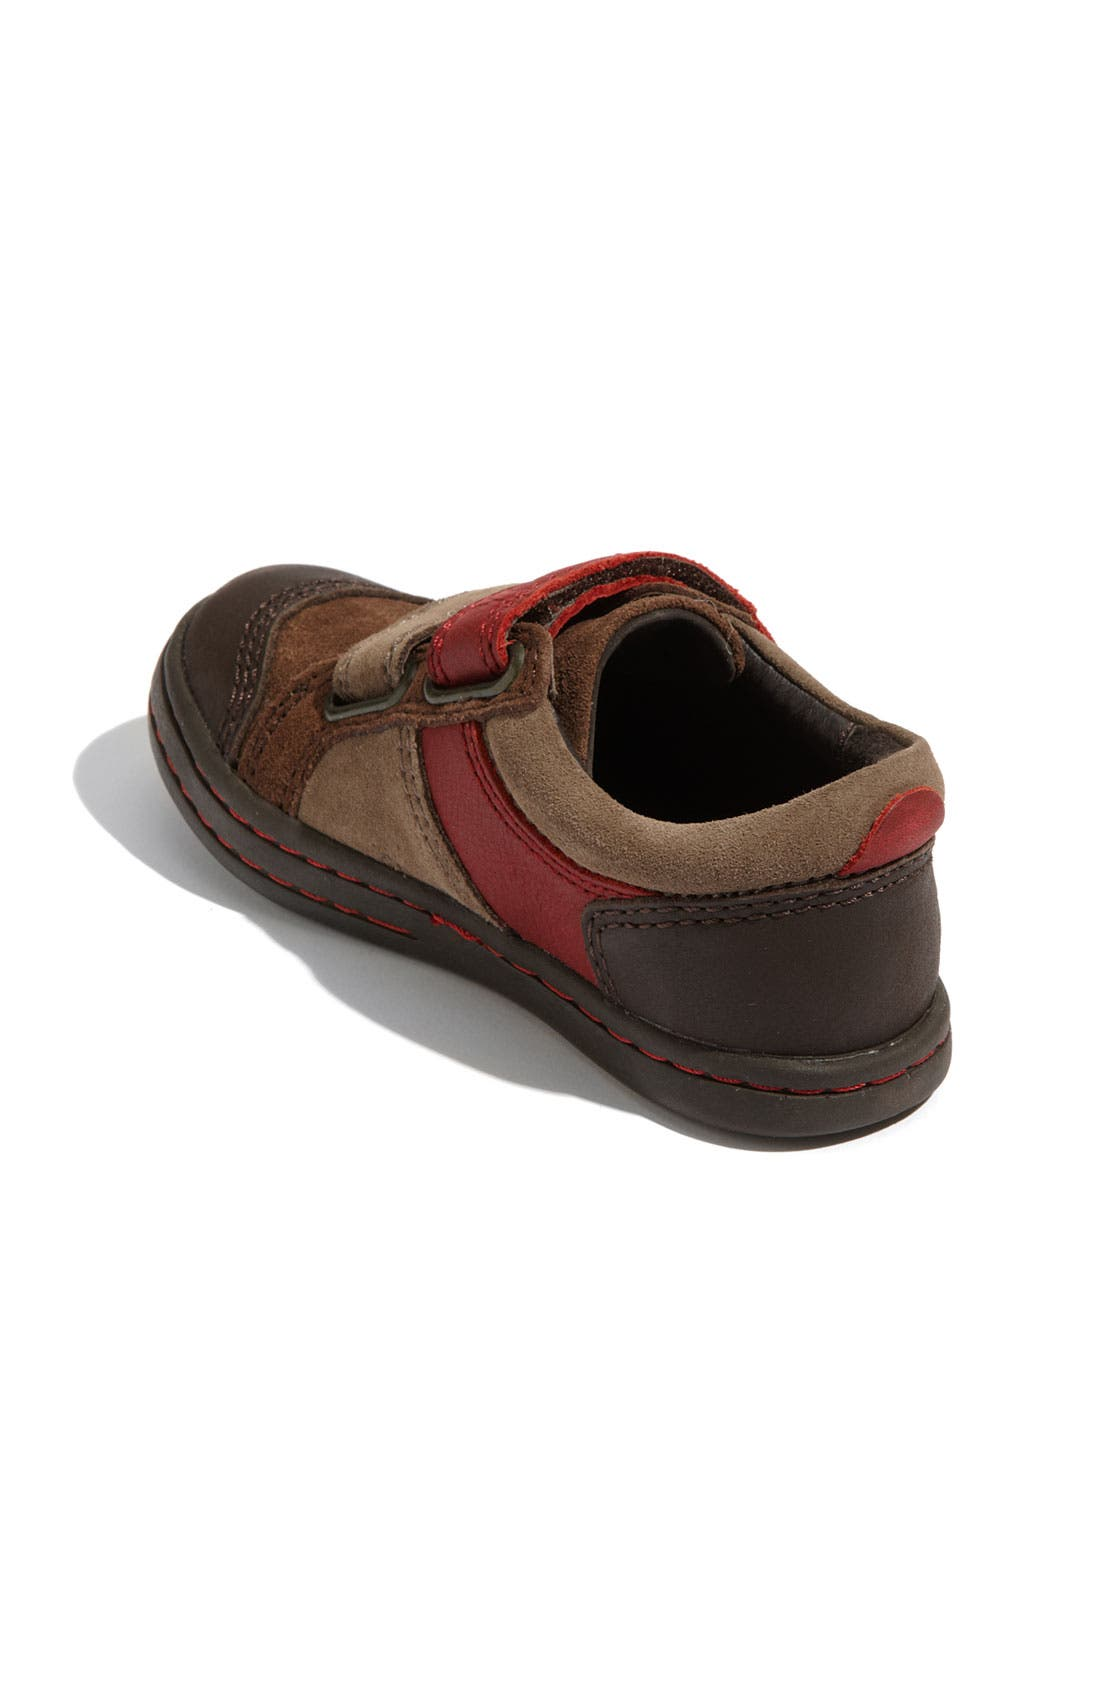 Alternate Image 2  - Kickers 'Jump' Shoe (Toddler)